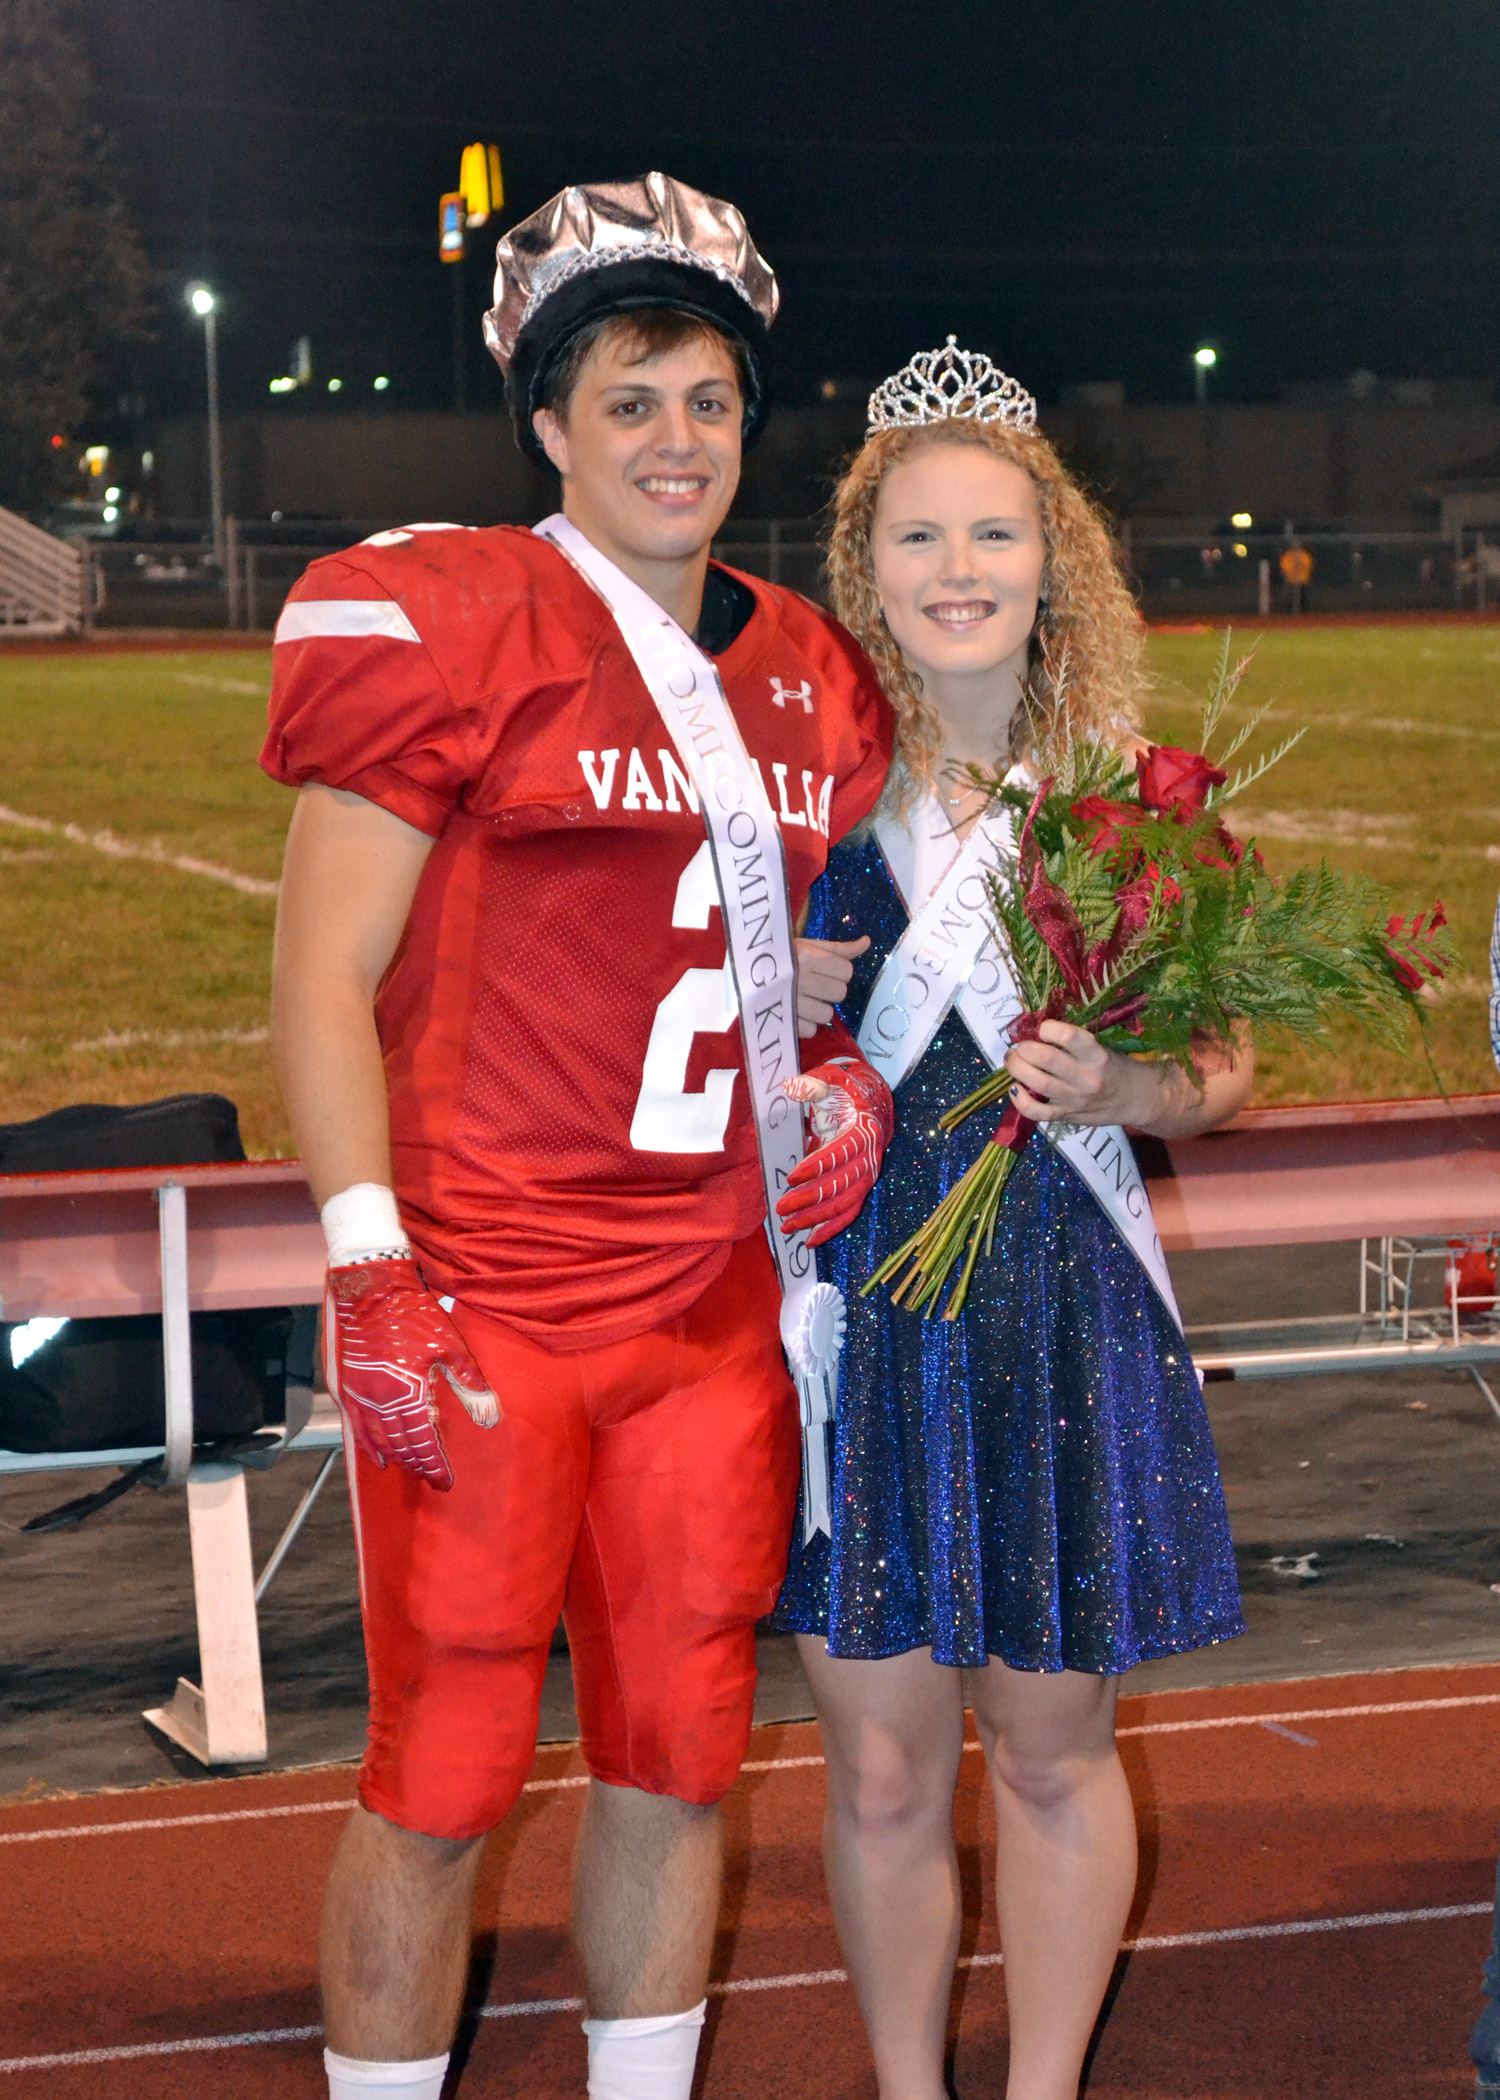 King Thomas and Queen Lanee